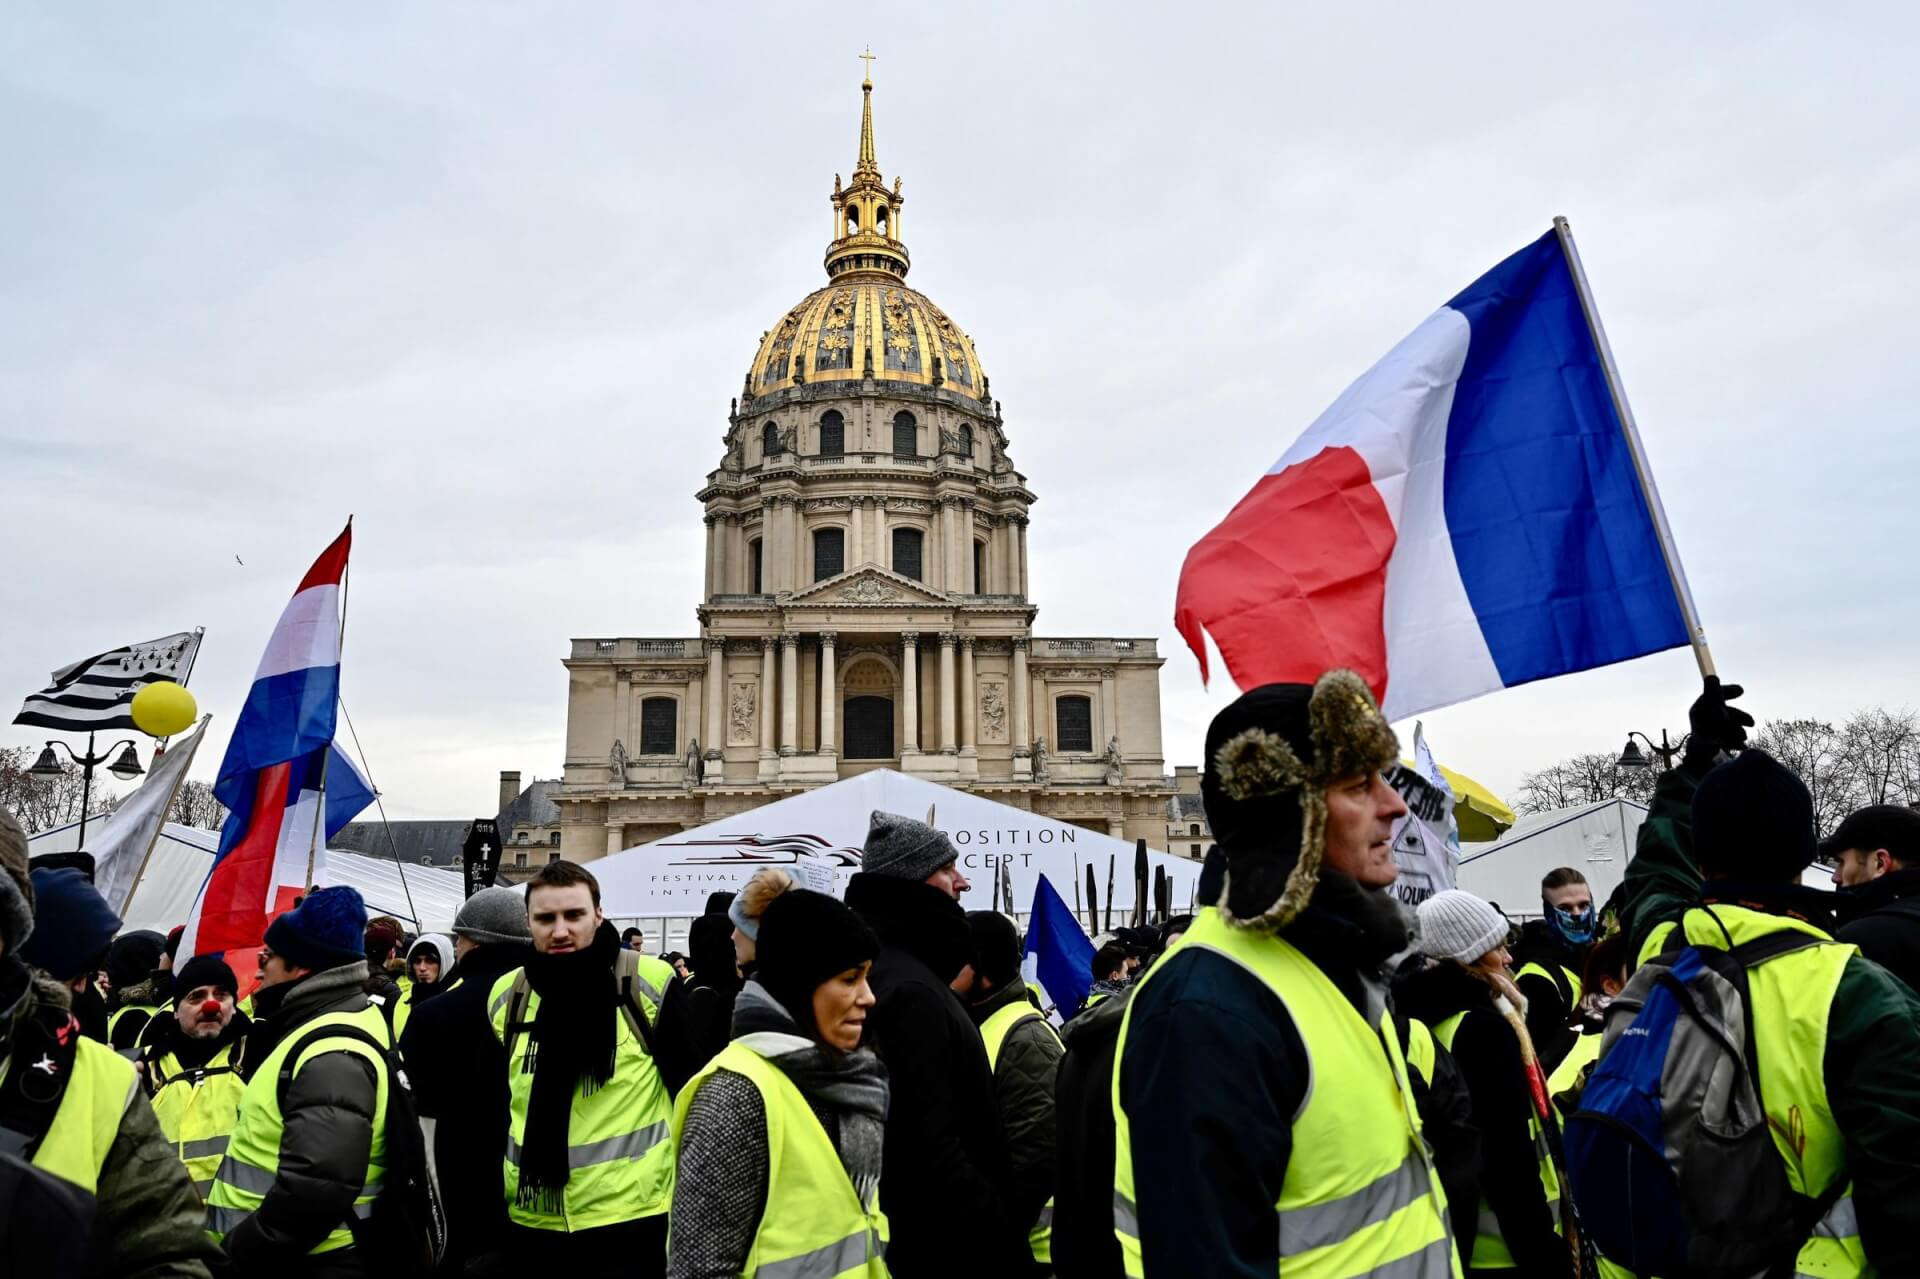 The Yellow Vest Protests: An Echo of France's History